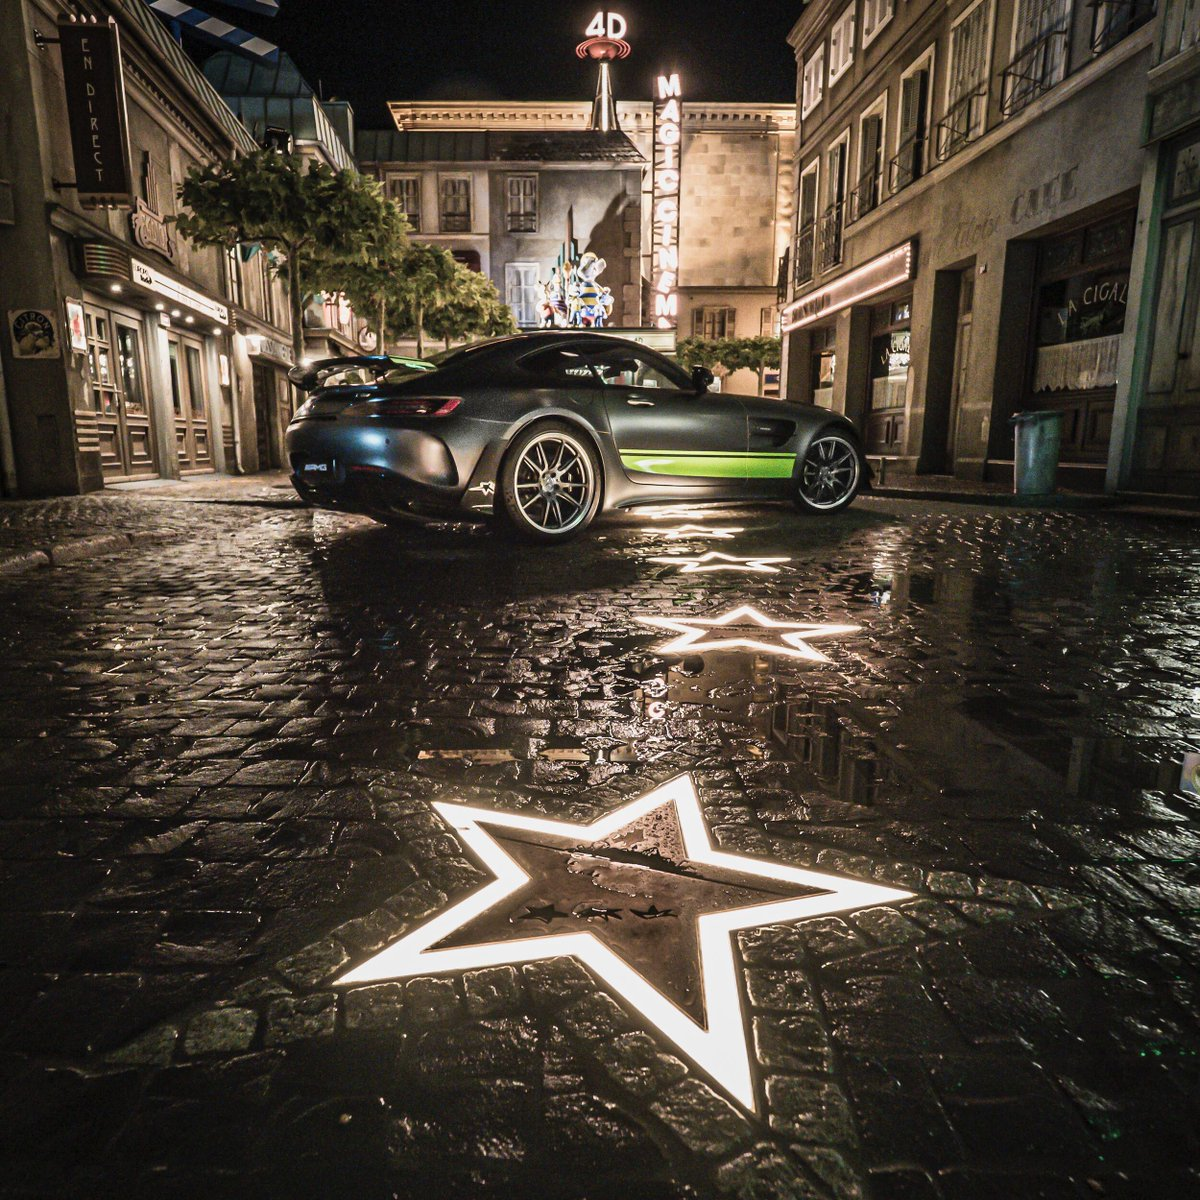 Reaching for the stars with @herminsche308 at @europa_park.  https://t.co/1ok81bwY5z #MercedesAMG #DrivingPerformance #Mercedes #AMG #GT https://t.co/JoDgWxb2WV